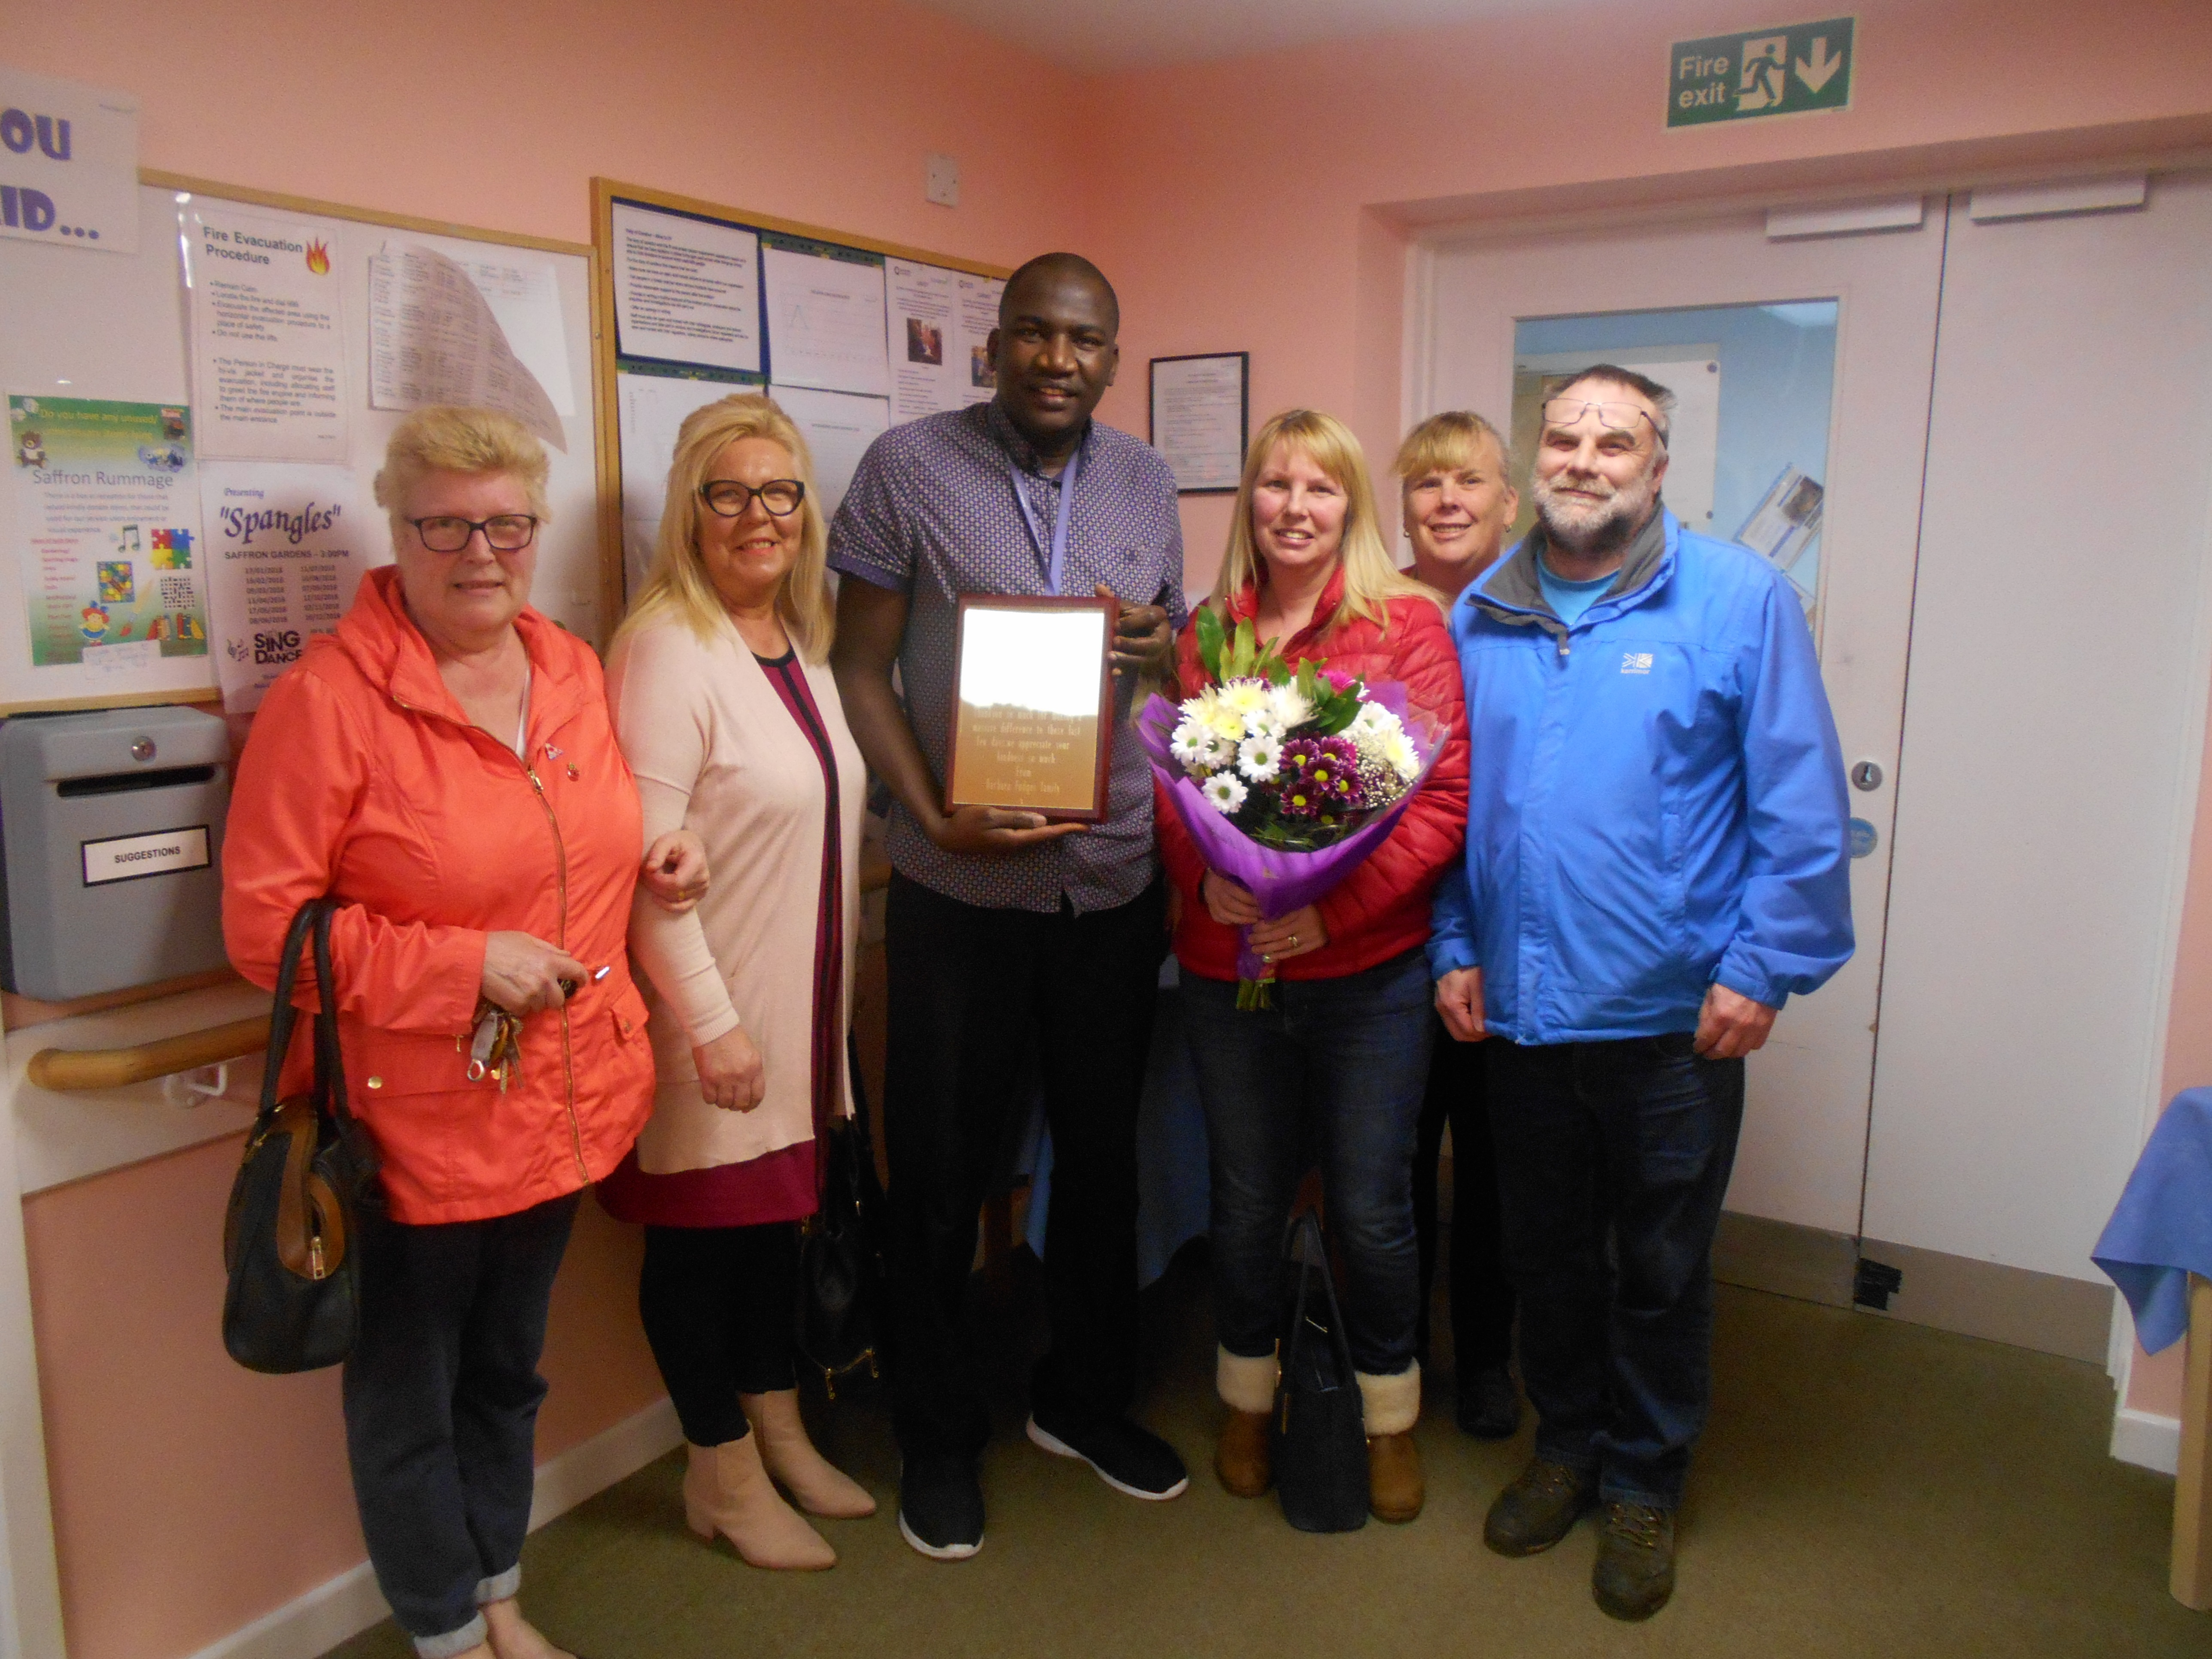 Julie Billitteri and her family present thank you plaque to Buba Touray, for end of life care